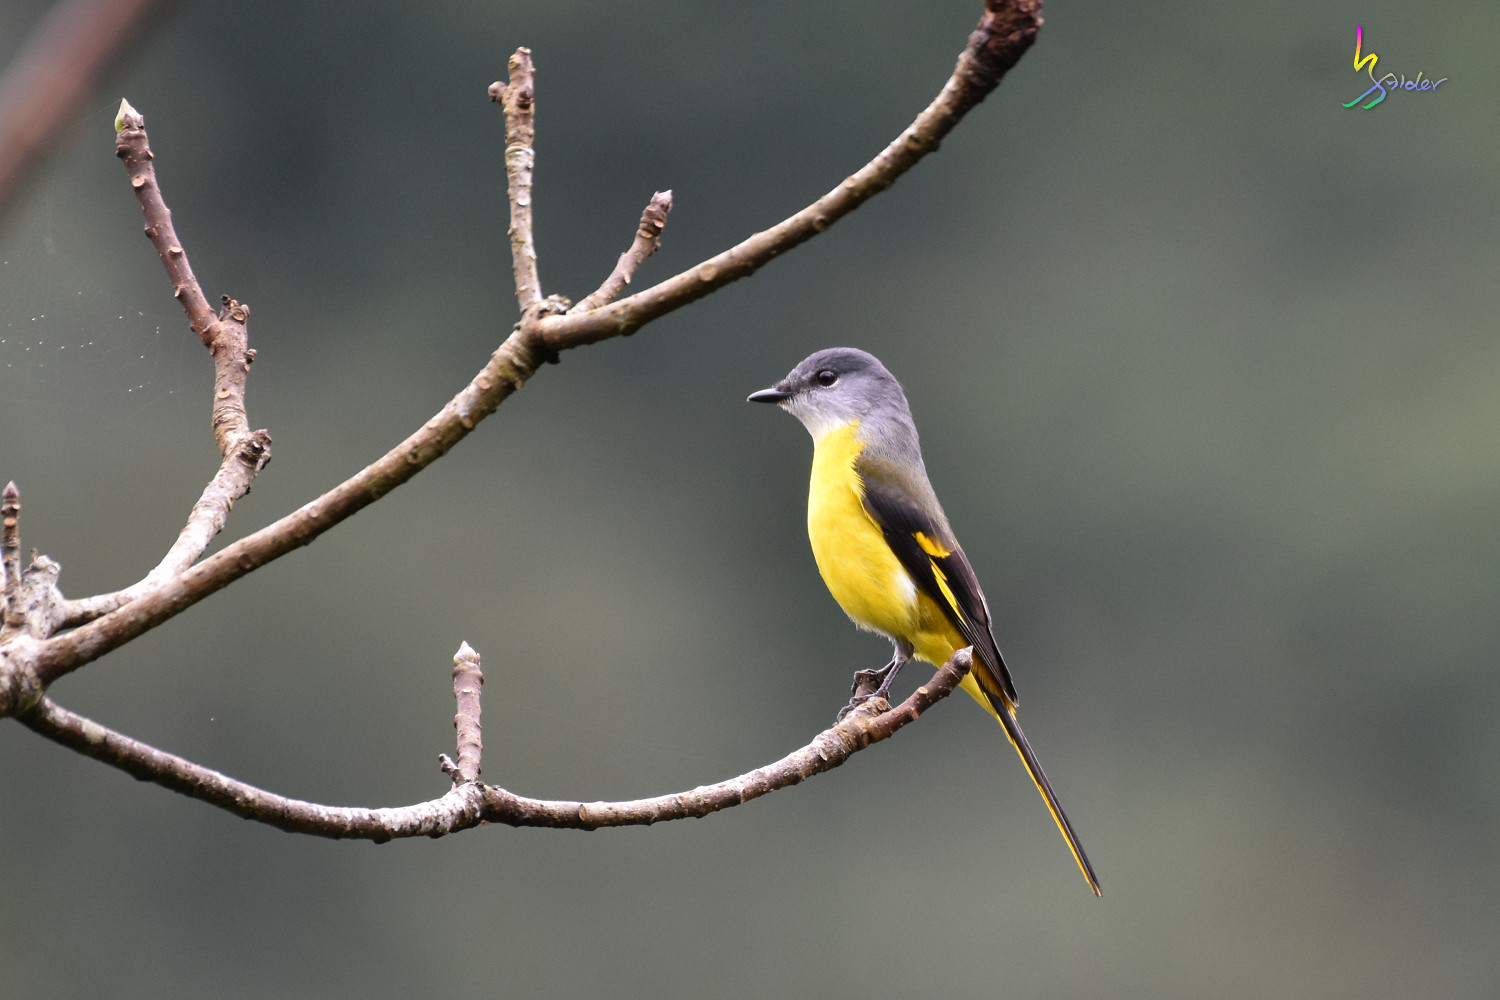 Gray-chinned_Minivet_6894